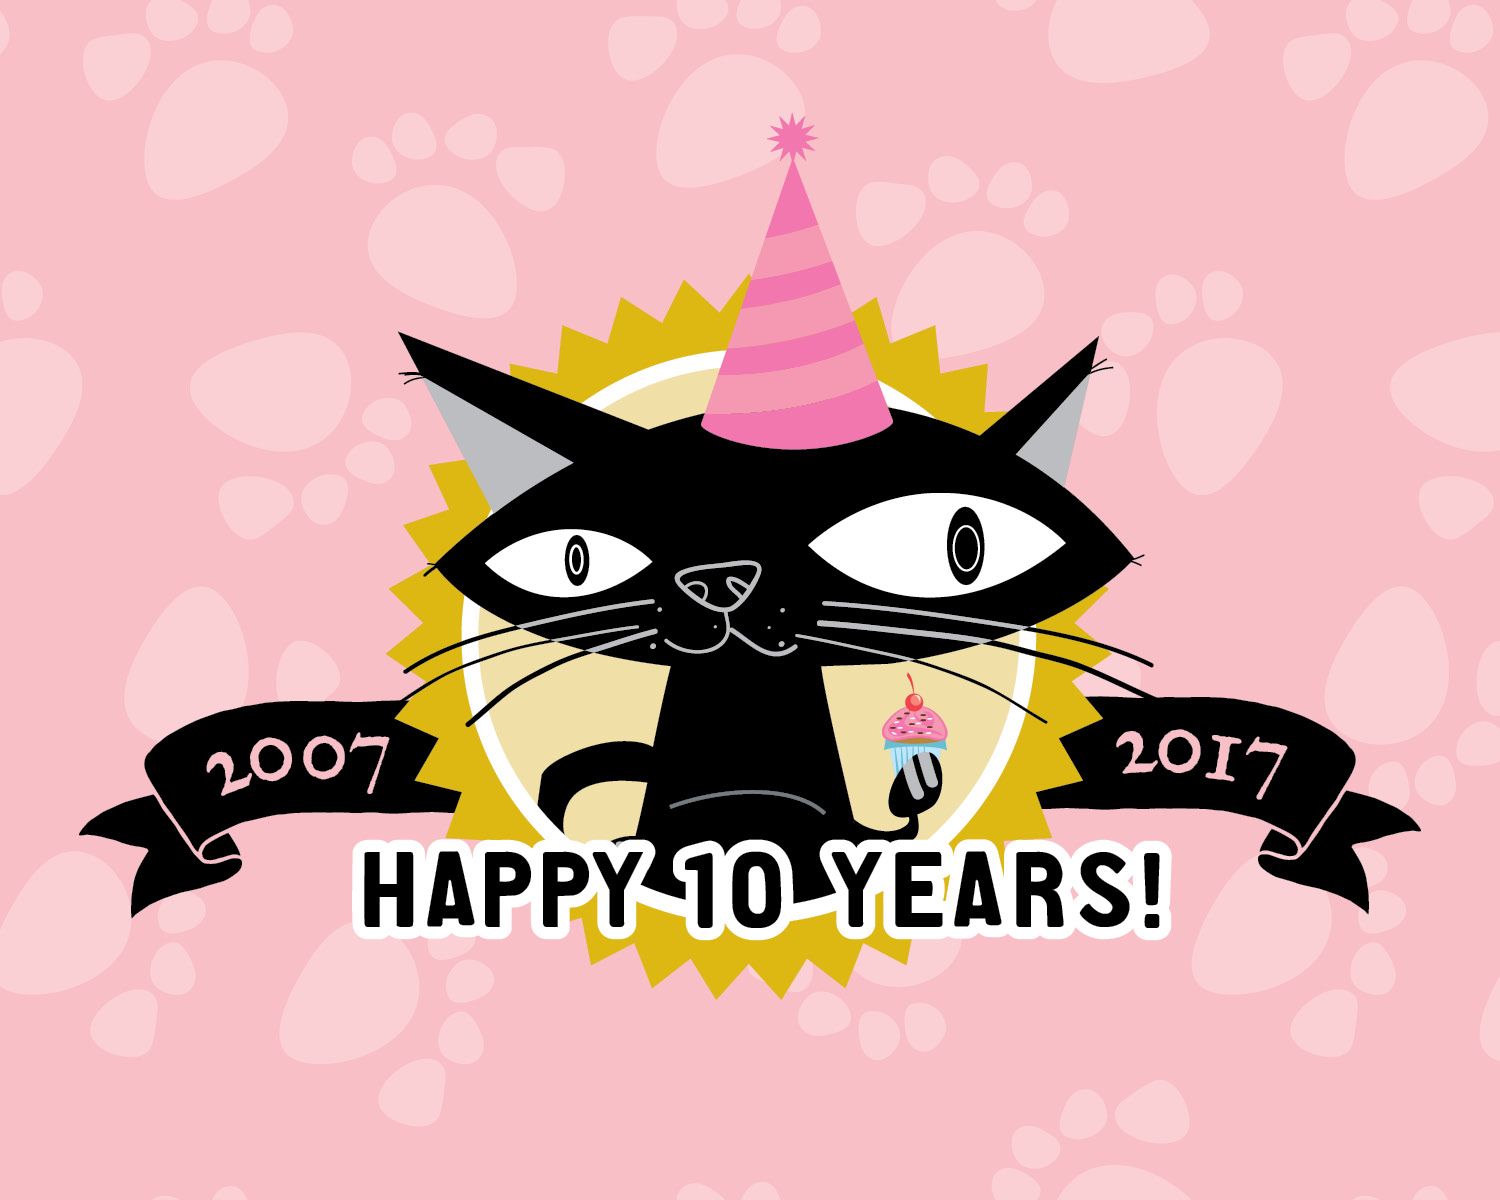 Fat Cat Birthday Badge, Black cat with cupcake, birthday hat and banner, pink paw prints